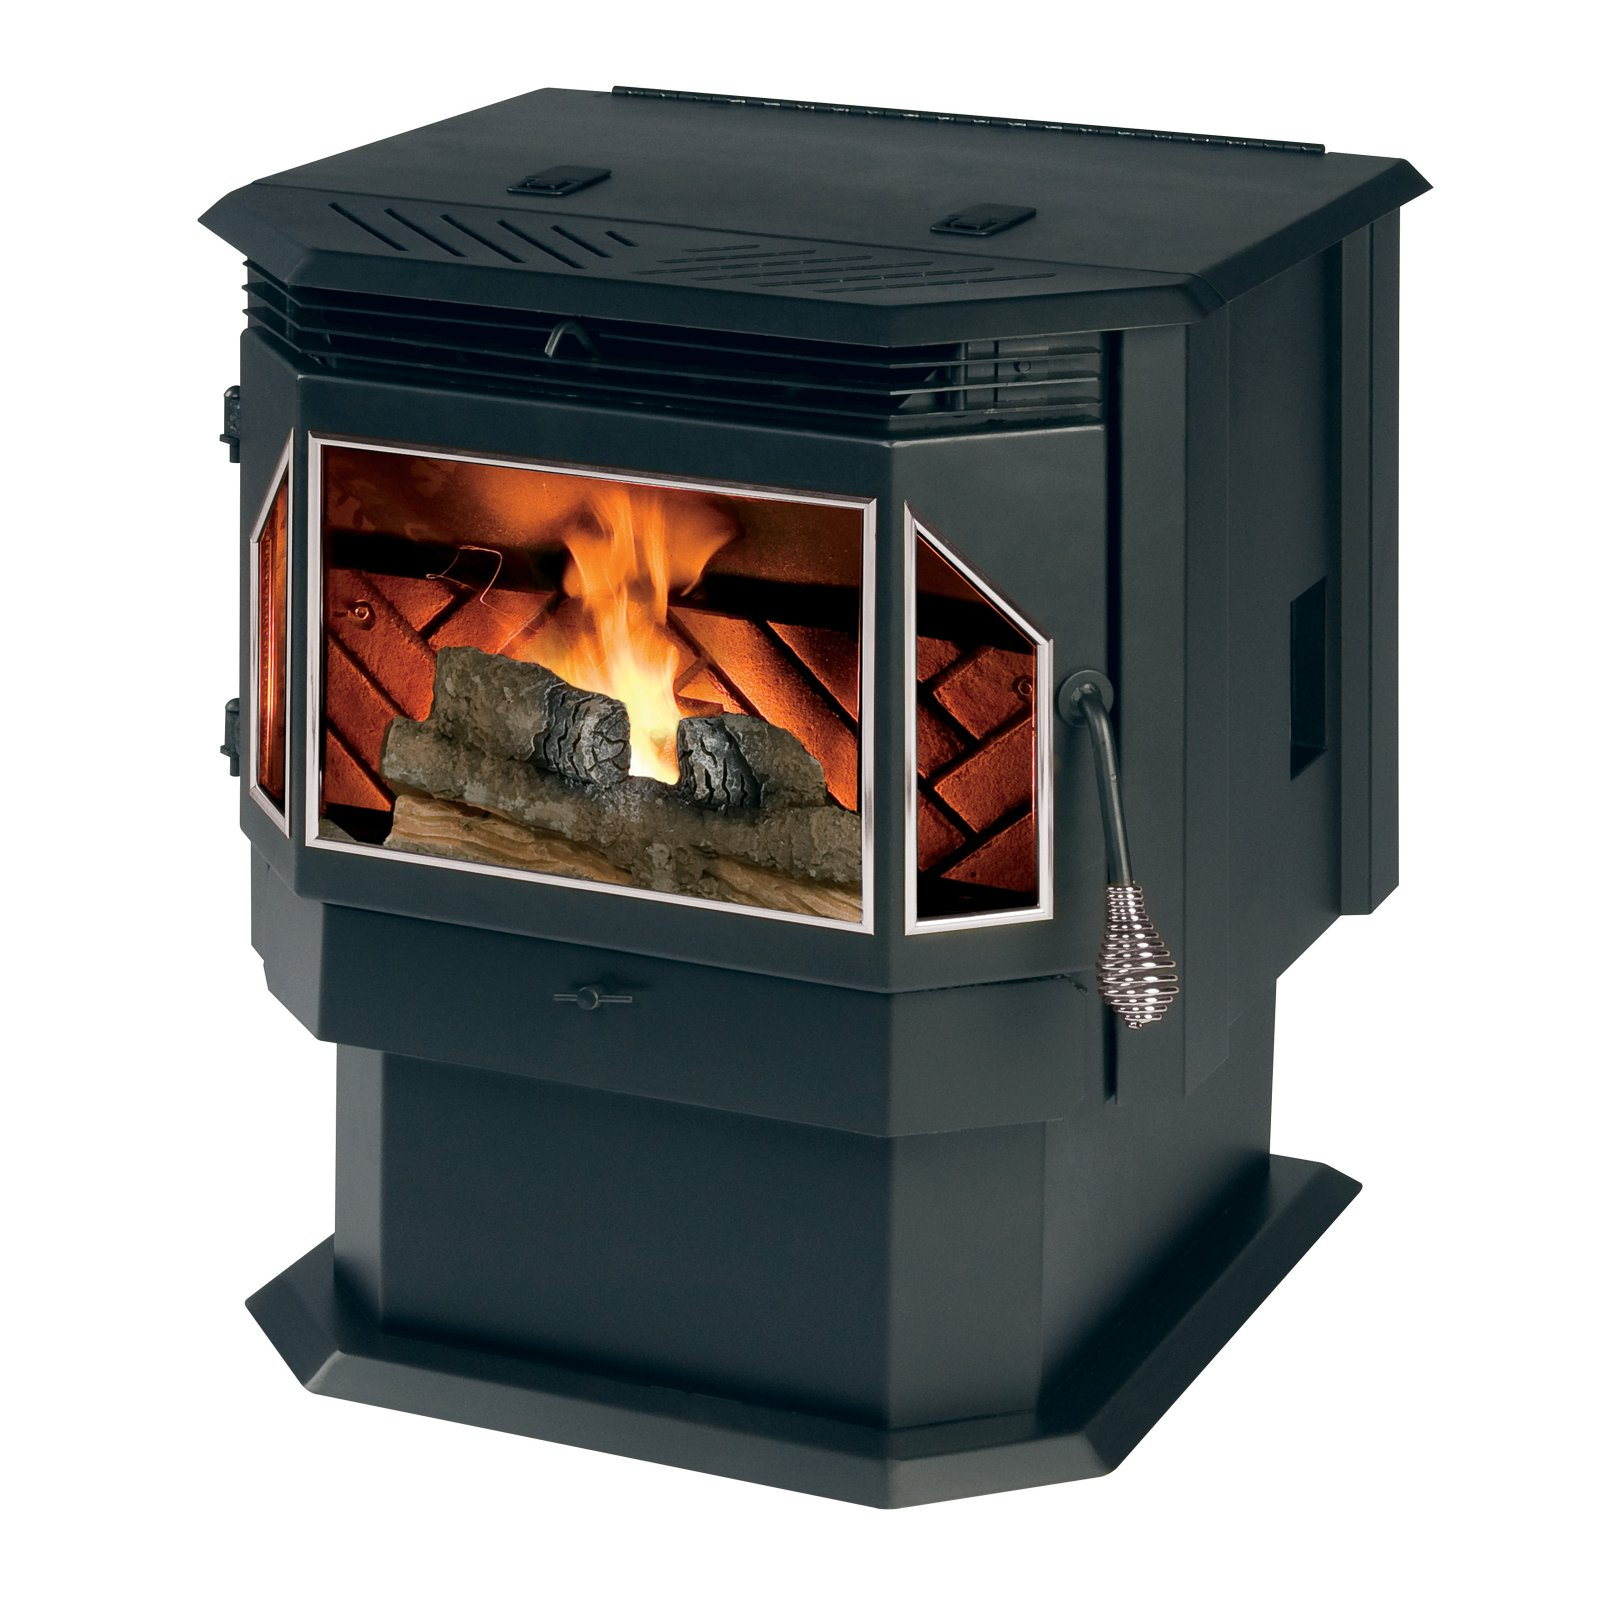 Summers Heat SHPEP Pellet Stove by Englands Stove Works Inc